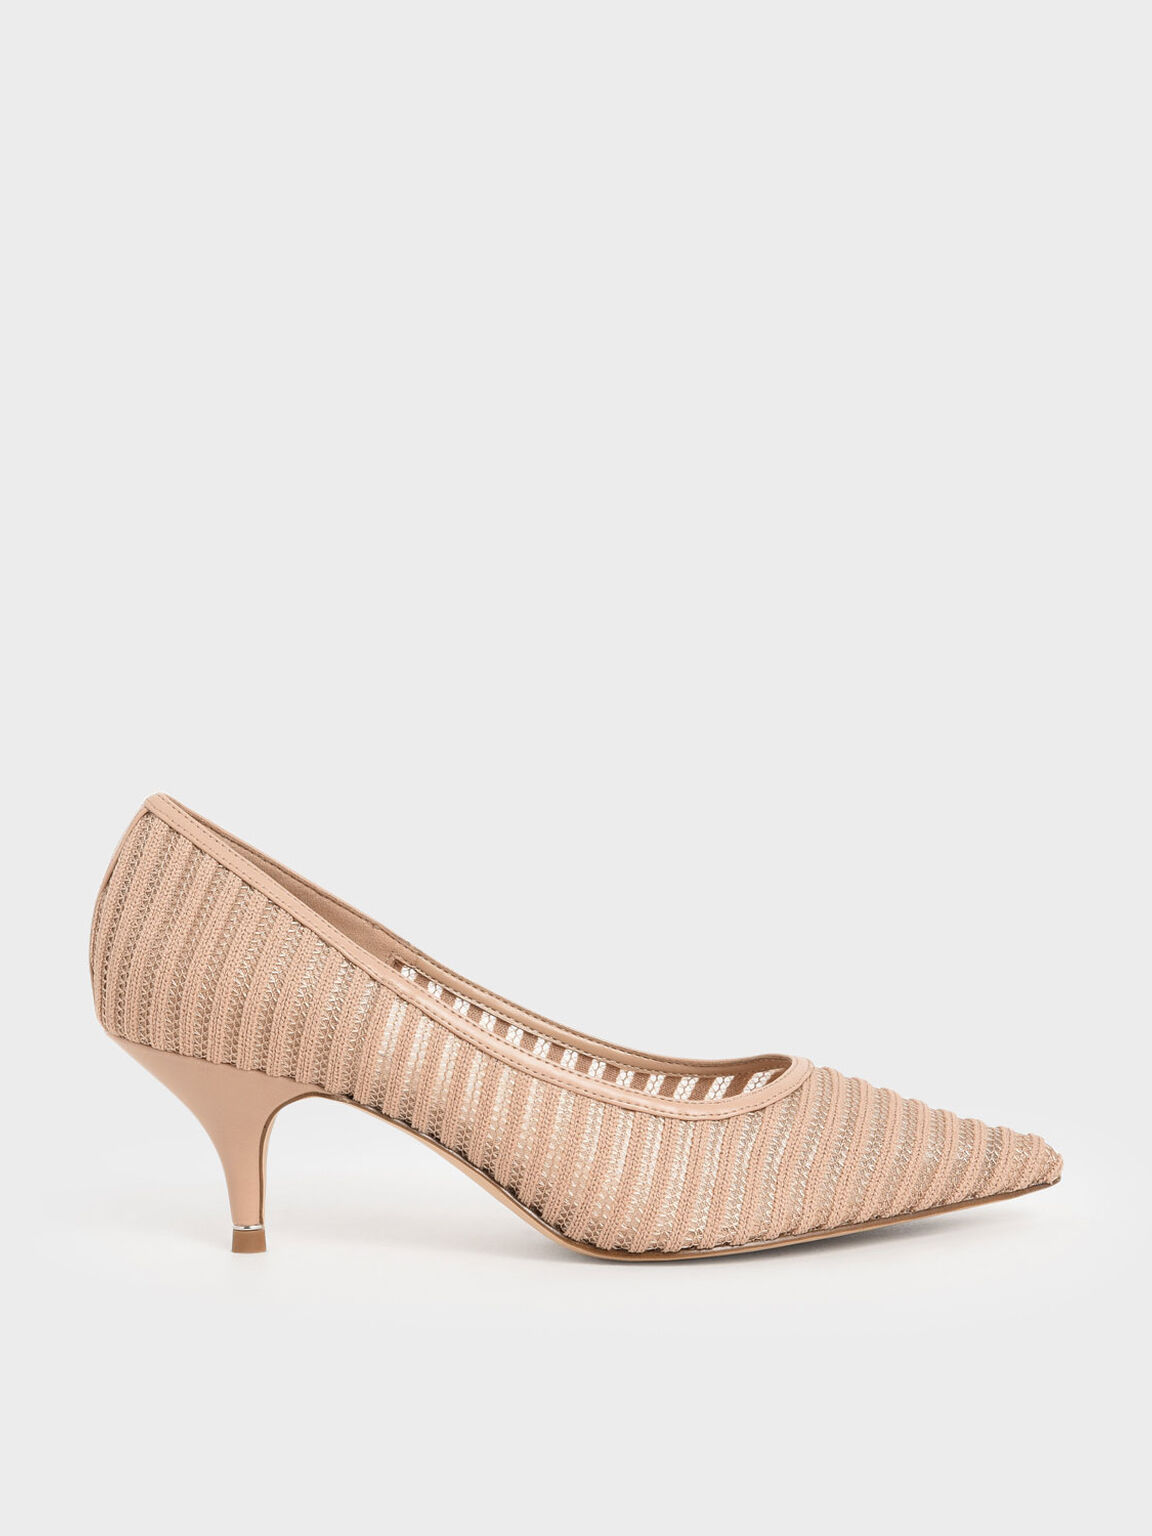 Mesh Pointed Toe Pumps, Nude, hi-res